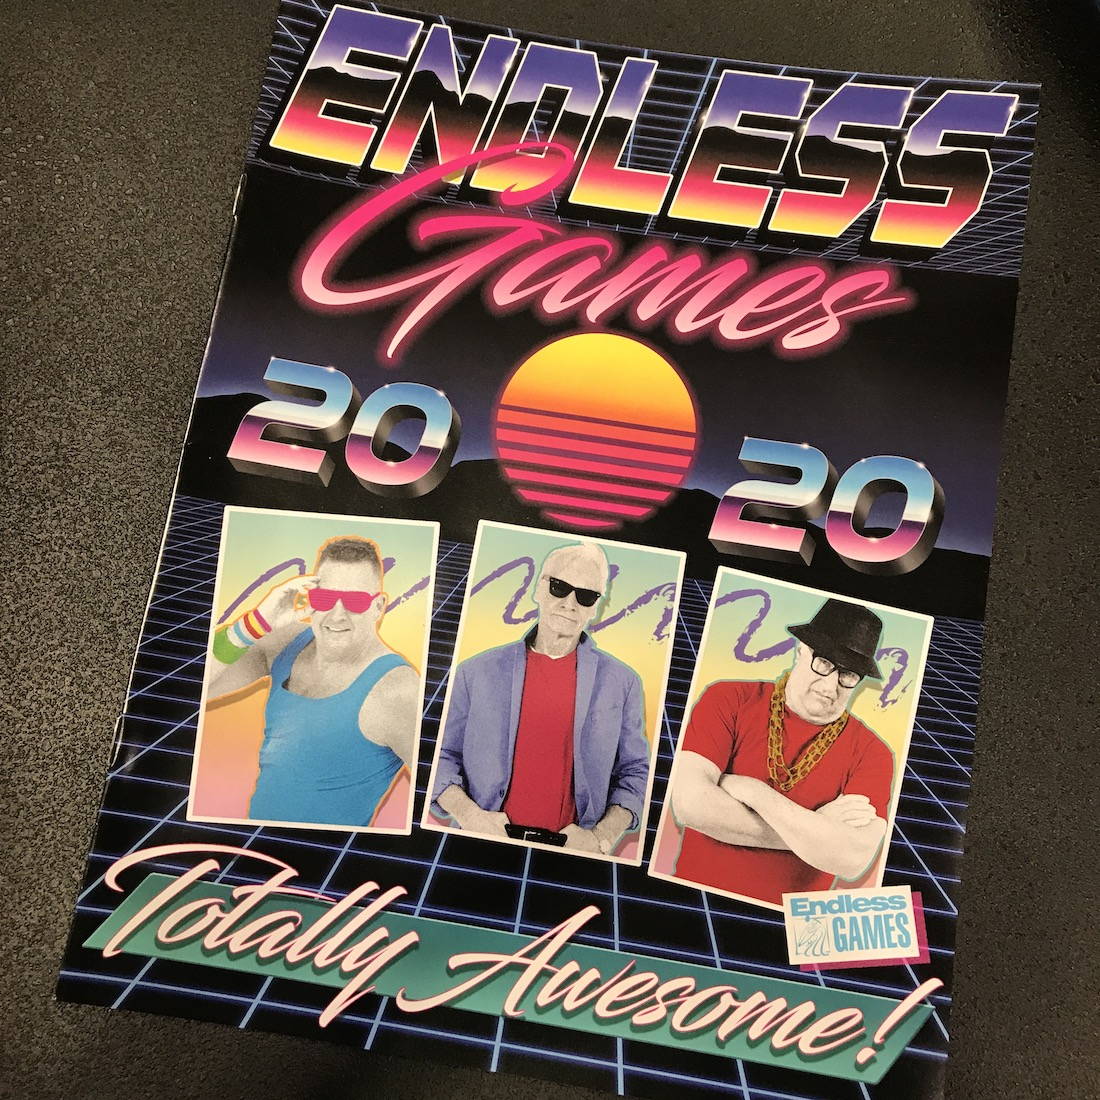 Endless games 2020 catalog with owners dressed up as if it's the 1980s